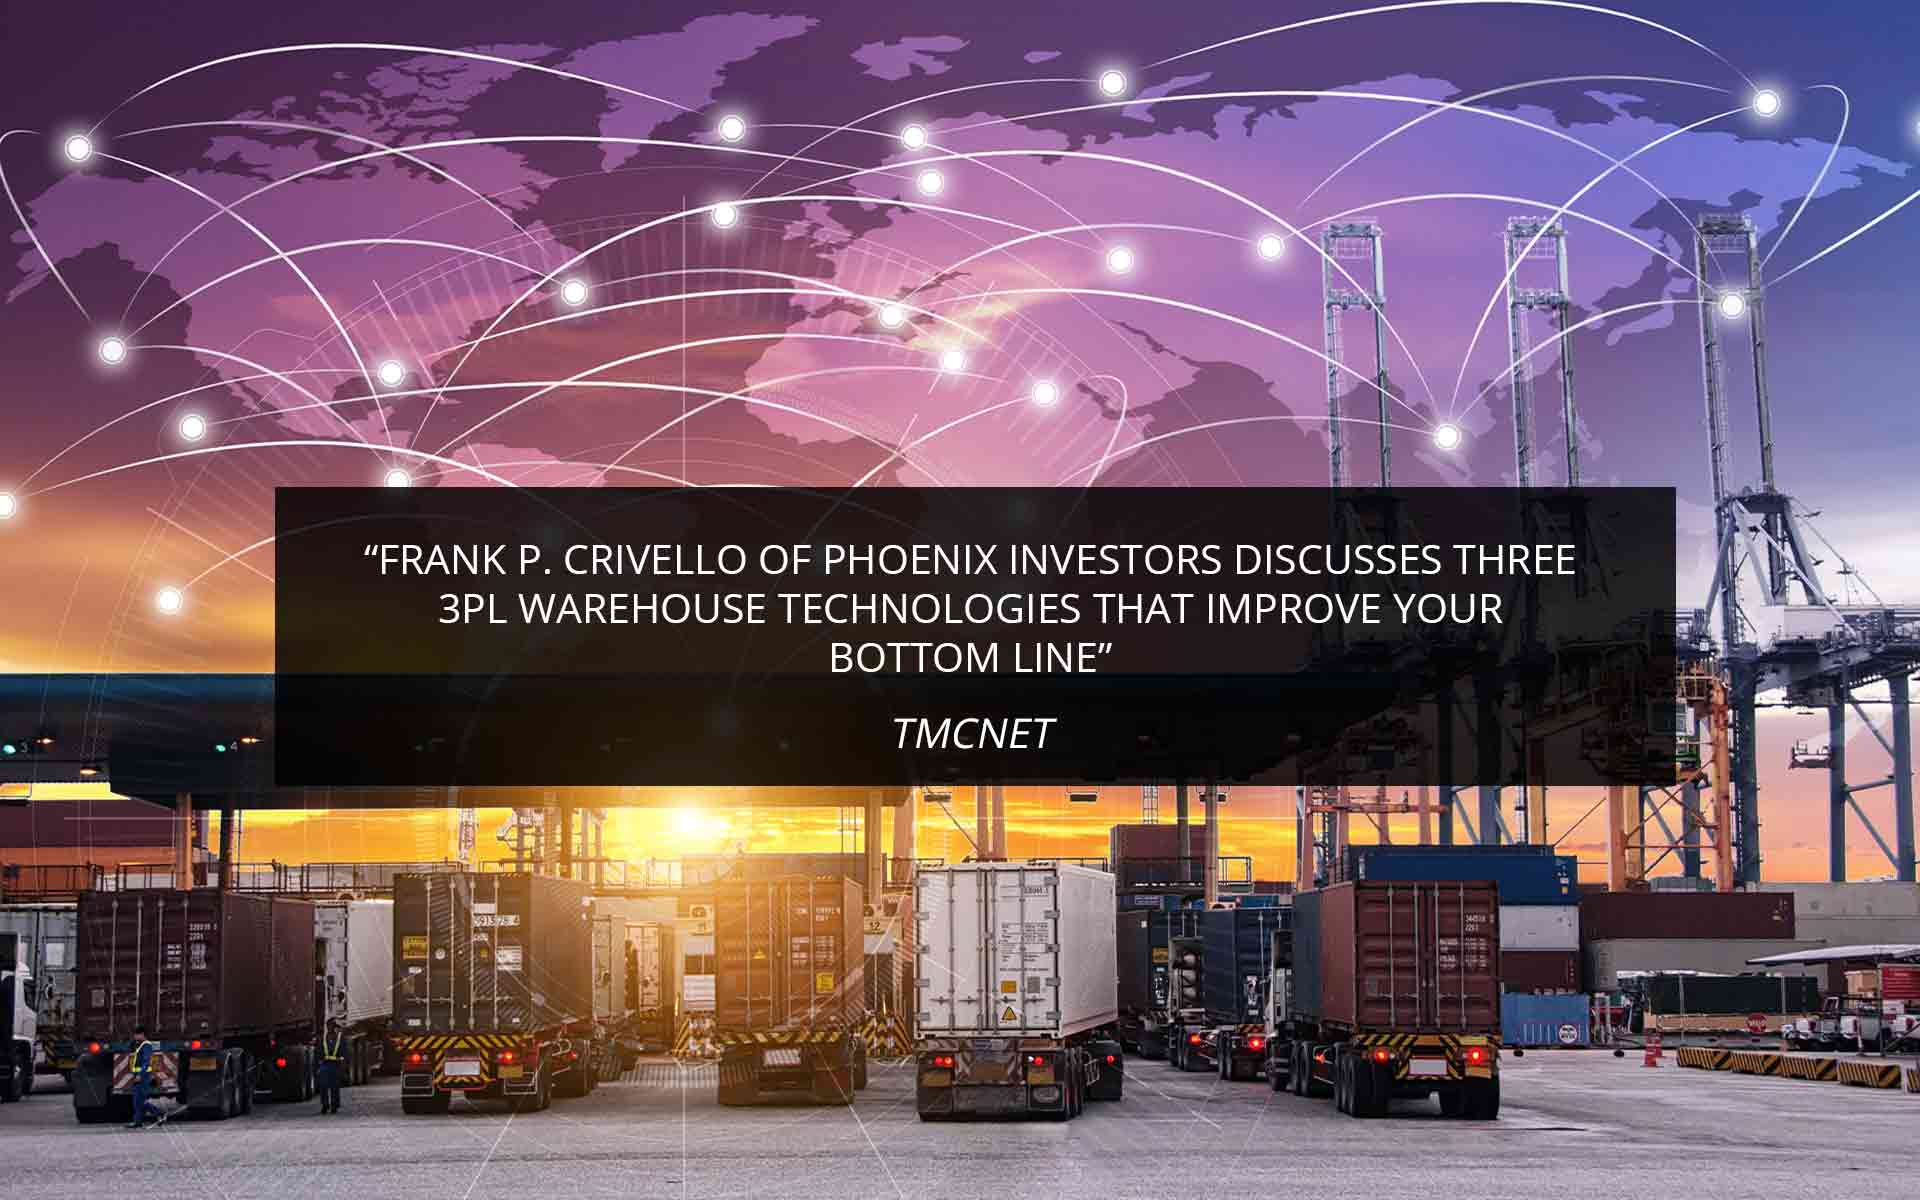 Frank P. Crivello of Phoenix Investors Discusses Three 3PL Warehouse Technologies That Improve Your Bottom Line